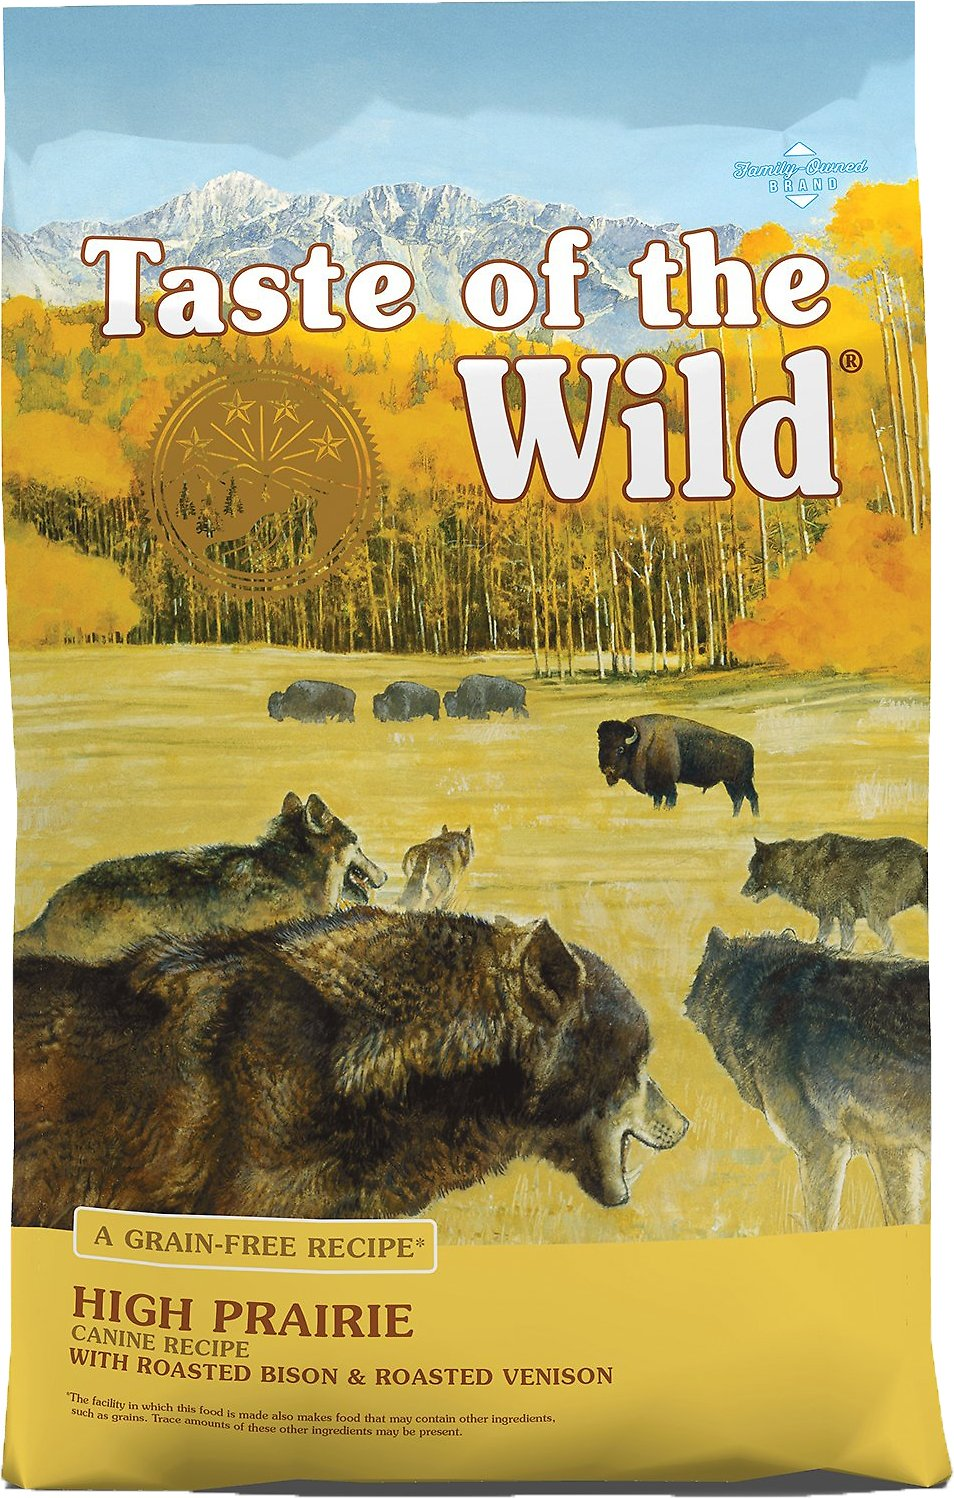 Taste Of The Wild Dog Food Reviews >> Taste of the Wild High Prairie Grain-Free Dry Dog Food at Low Prices - Free Shipping at Chewy.com